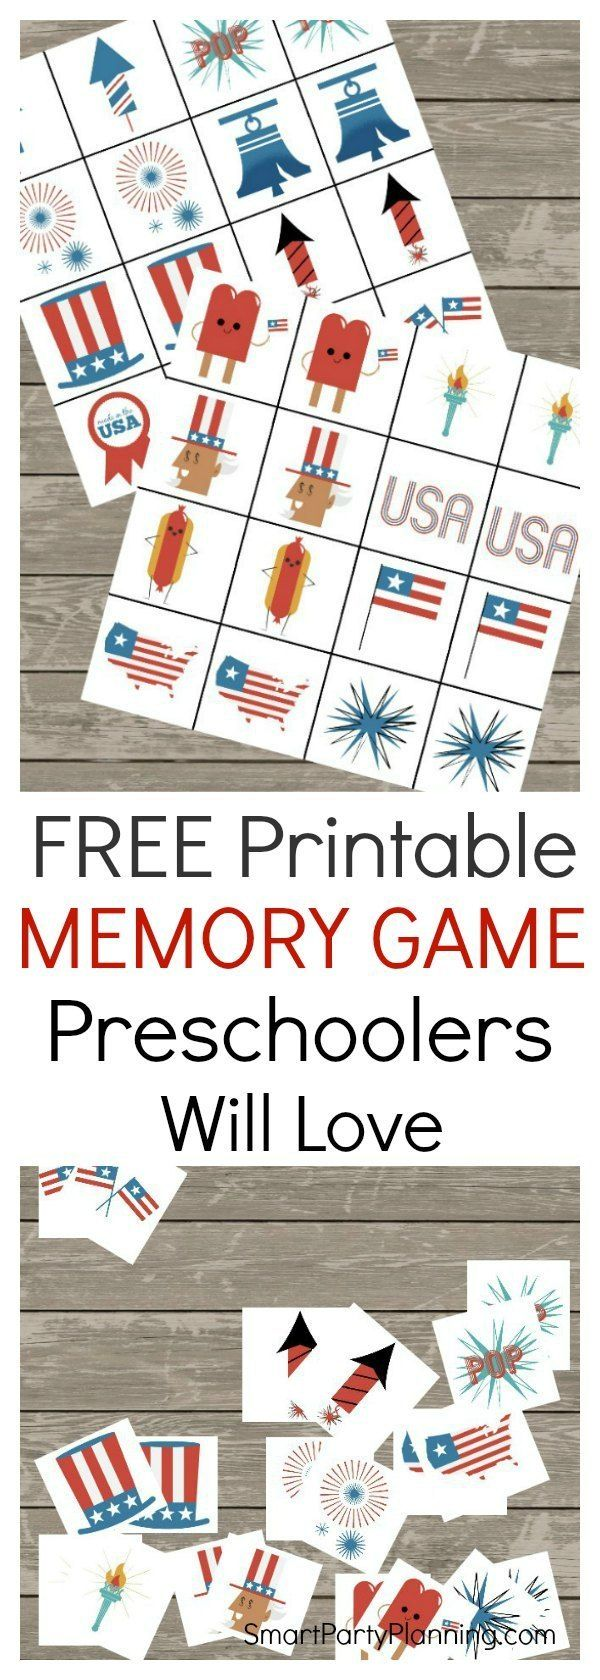 Printable Memory Game That Preschoolers Will Love Memory Games Labor Day Crafts Printables Free Kids [ 1680 x 600 Pixel ]